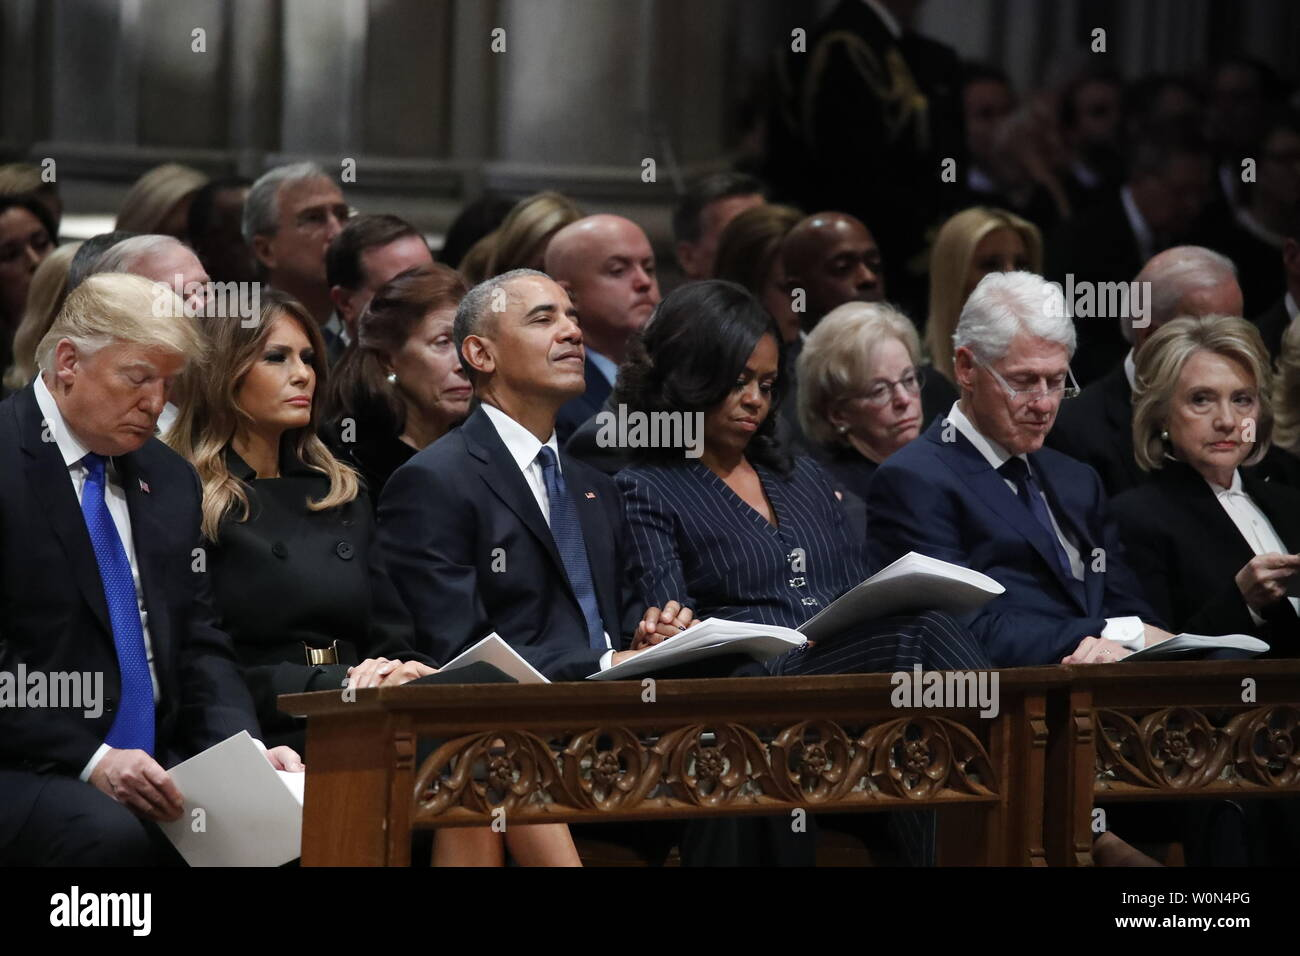 From left, President Donald Trump, first lady Melania Trump, former President Barack Obama, Michelle Obama, and former President Bill Clinton listen during a State Funeral at the National Cathedral, Wednesday, Dec. 5, 2018, in Washington, DC for former President George H.W. Bush.      Photo by Alex Brandon/UPI Stock Photo